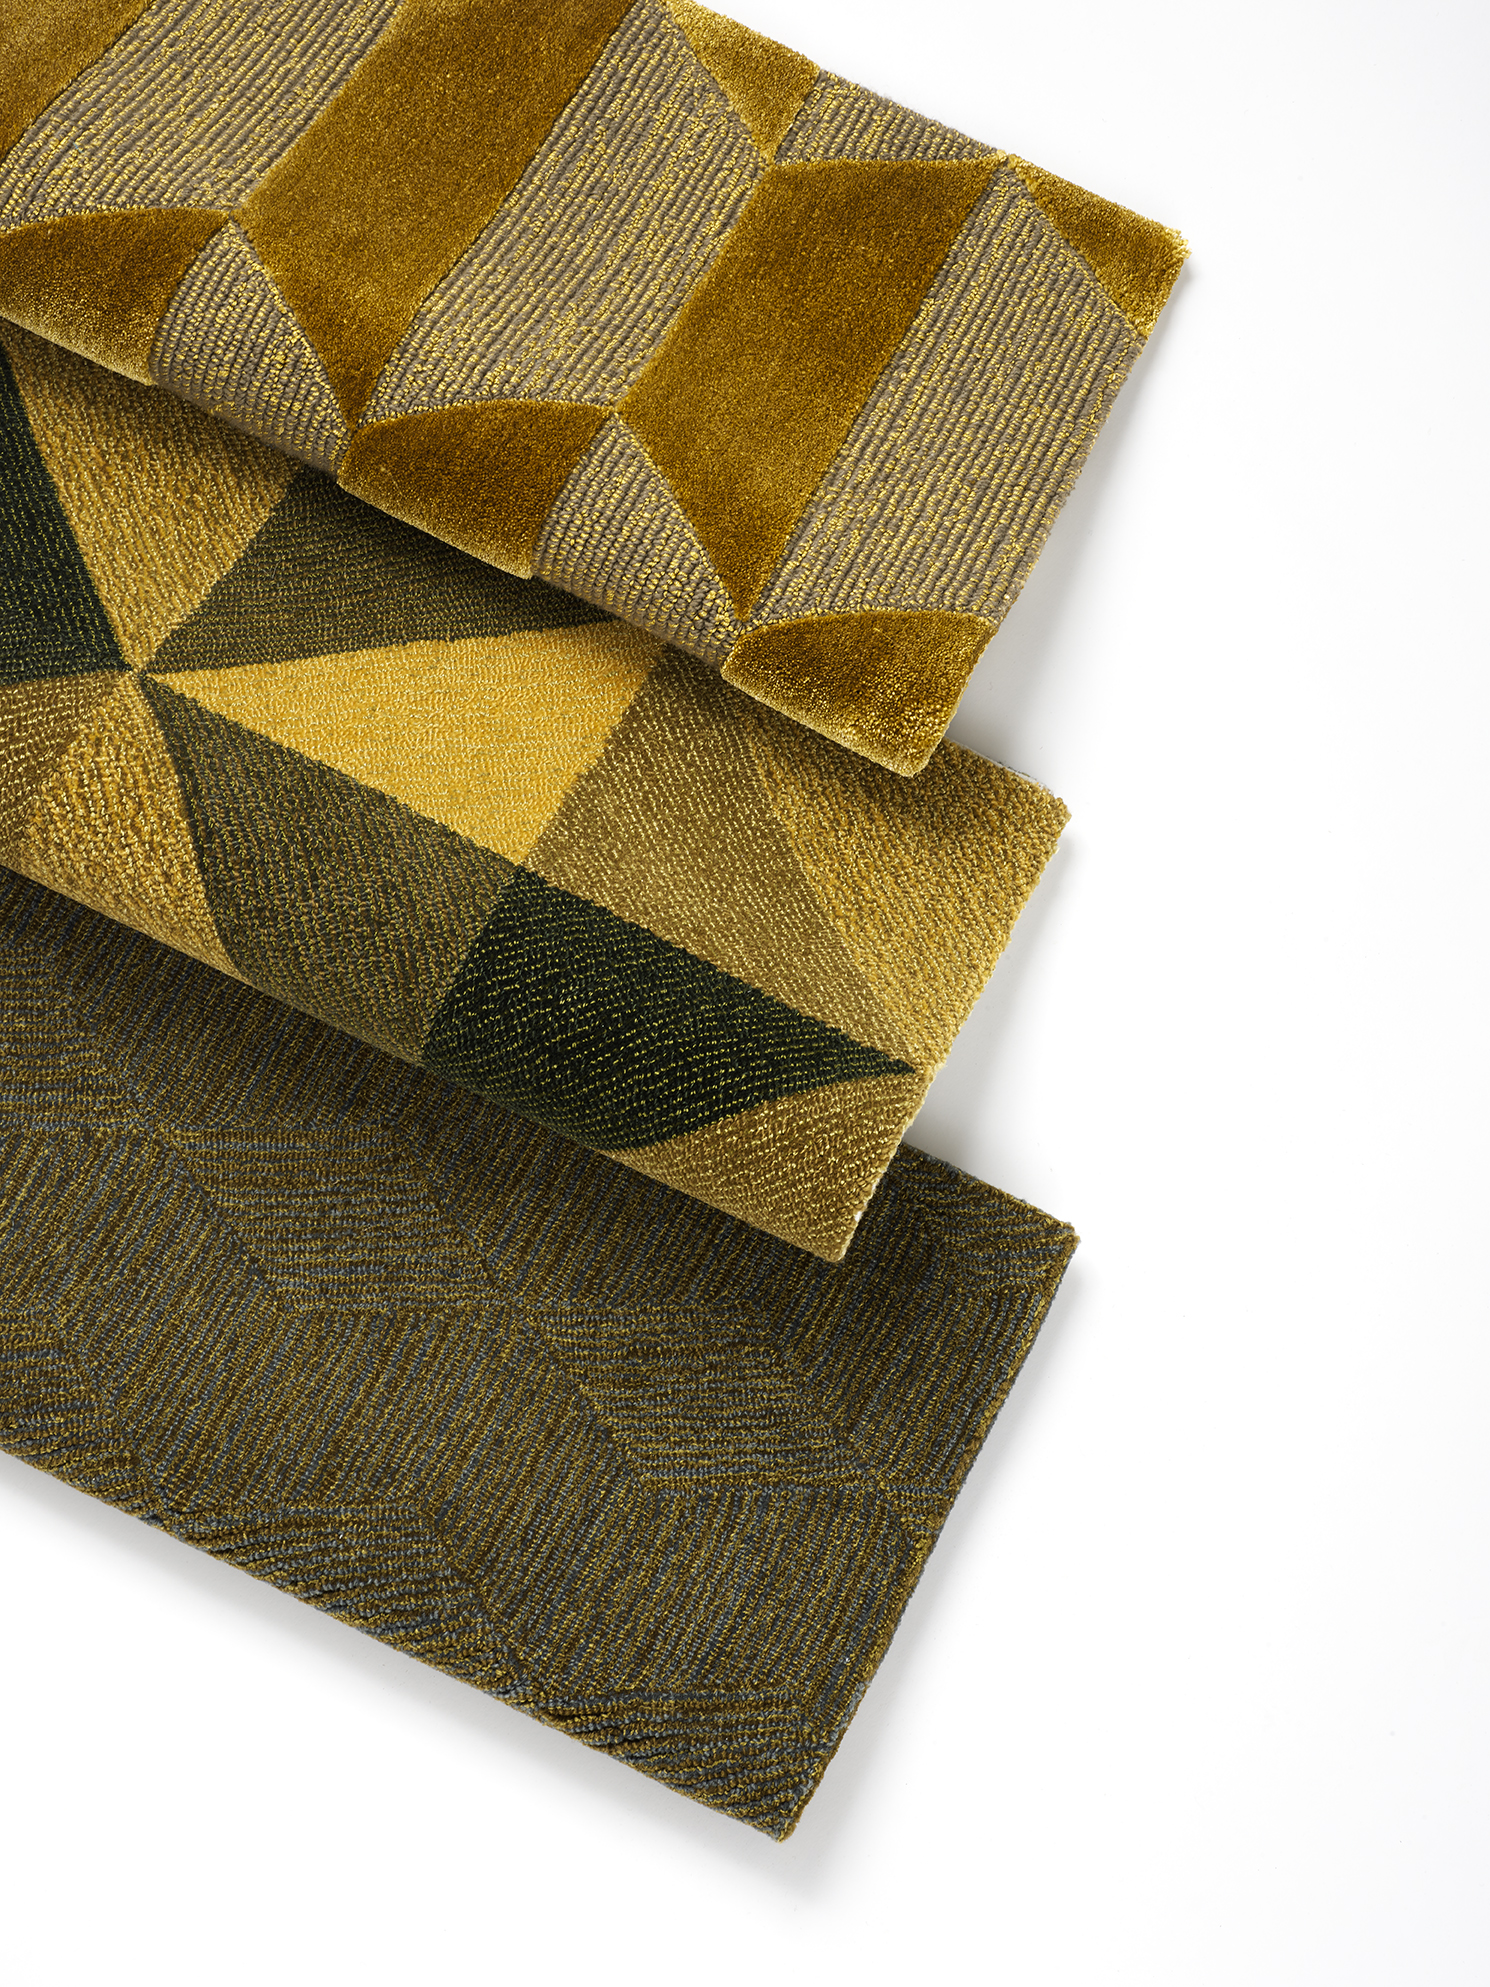 A stack of hand-tufted, silk wool rugs in natural tones with different geometric patterns.